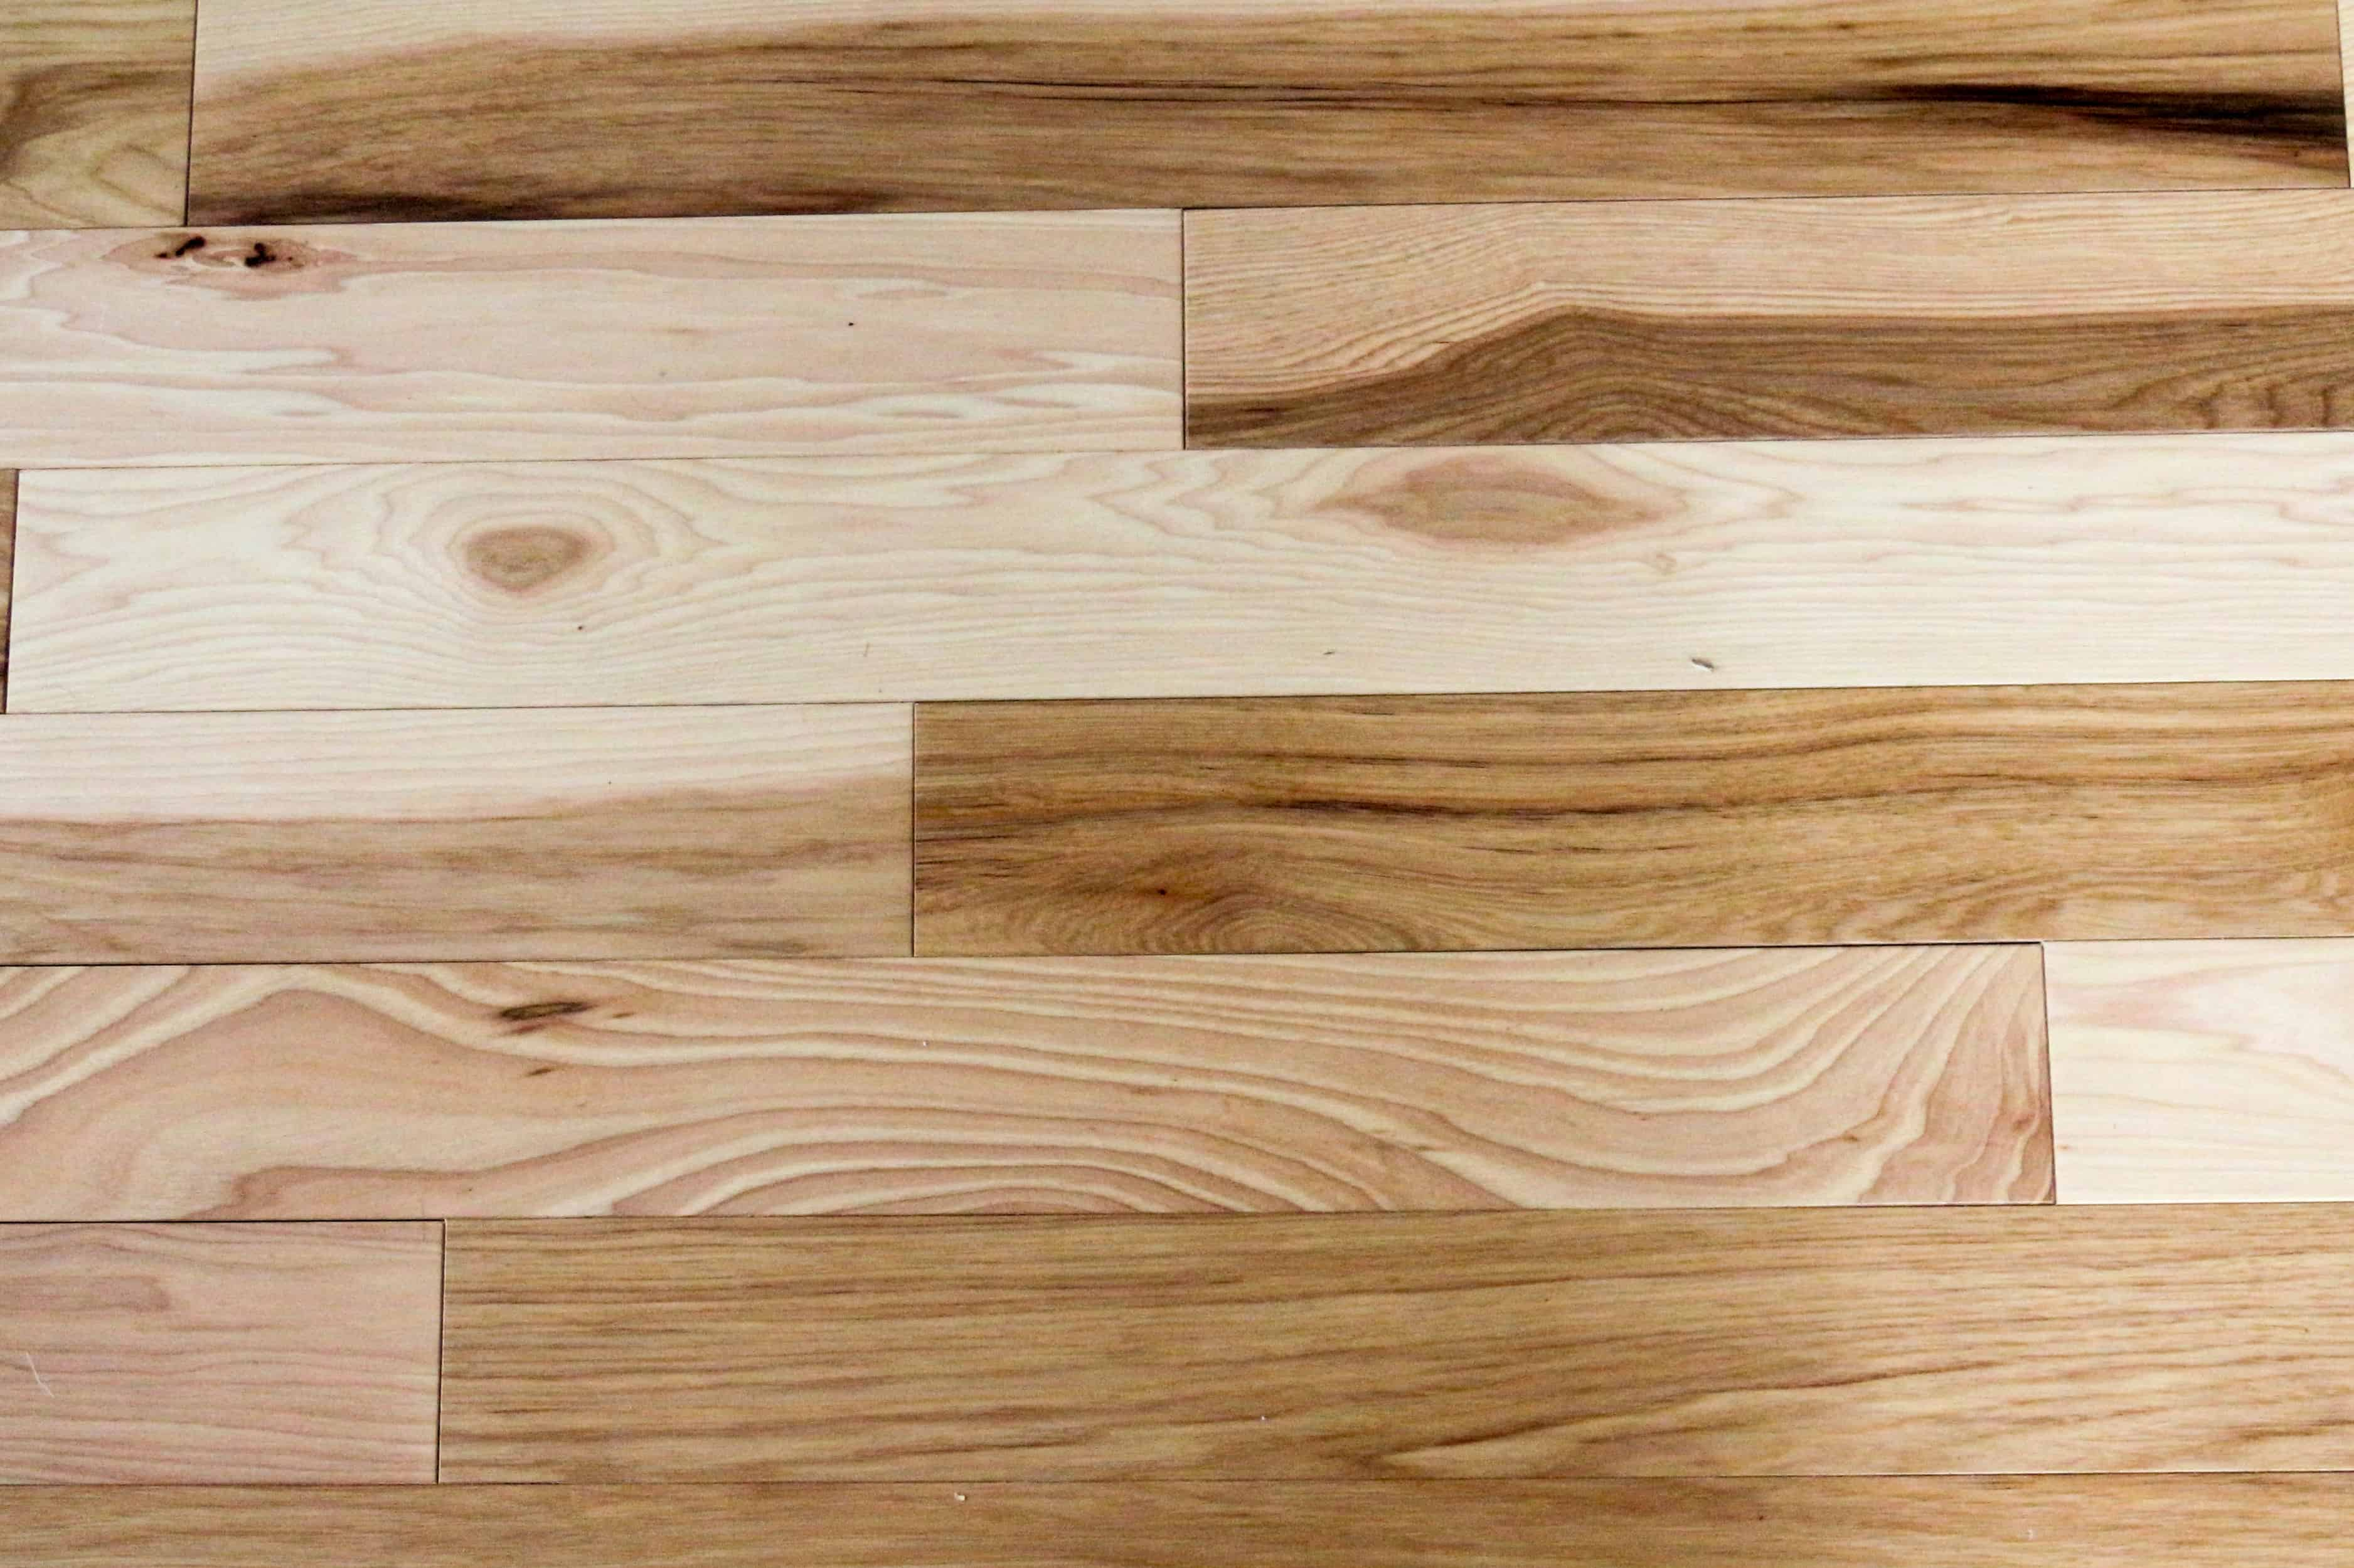 Hickory Hardwood High Contrast Beauty